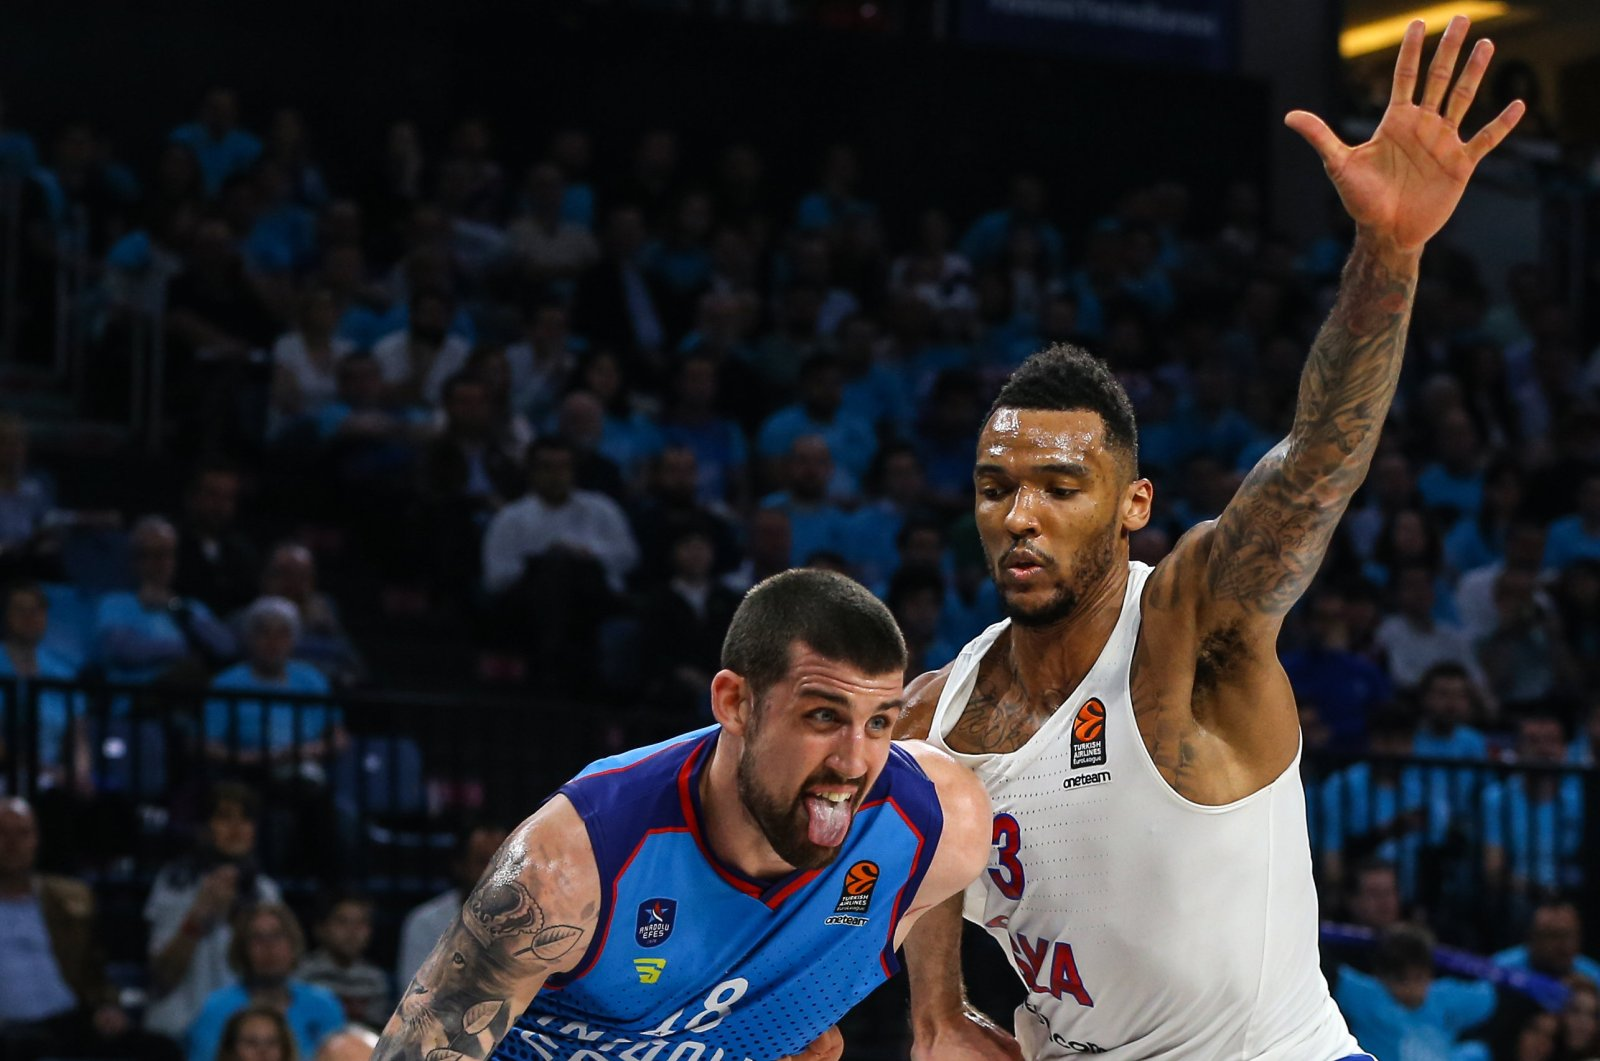 Adrien Moerman dribbles basketball during a Turkish Airlines EuroLeague match between Anadolu Efes and CSKA Moscow, in Istanbul, Turkey, 2019. (AA Photo)